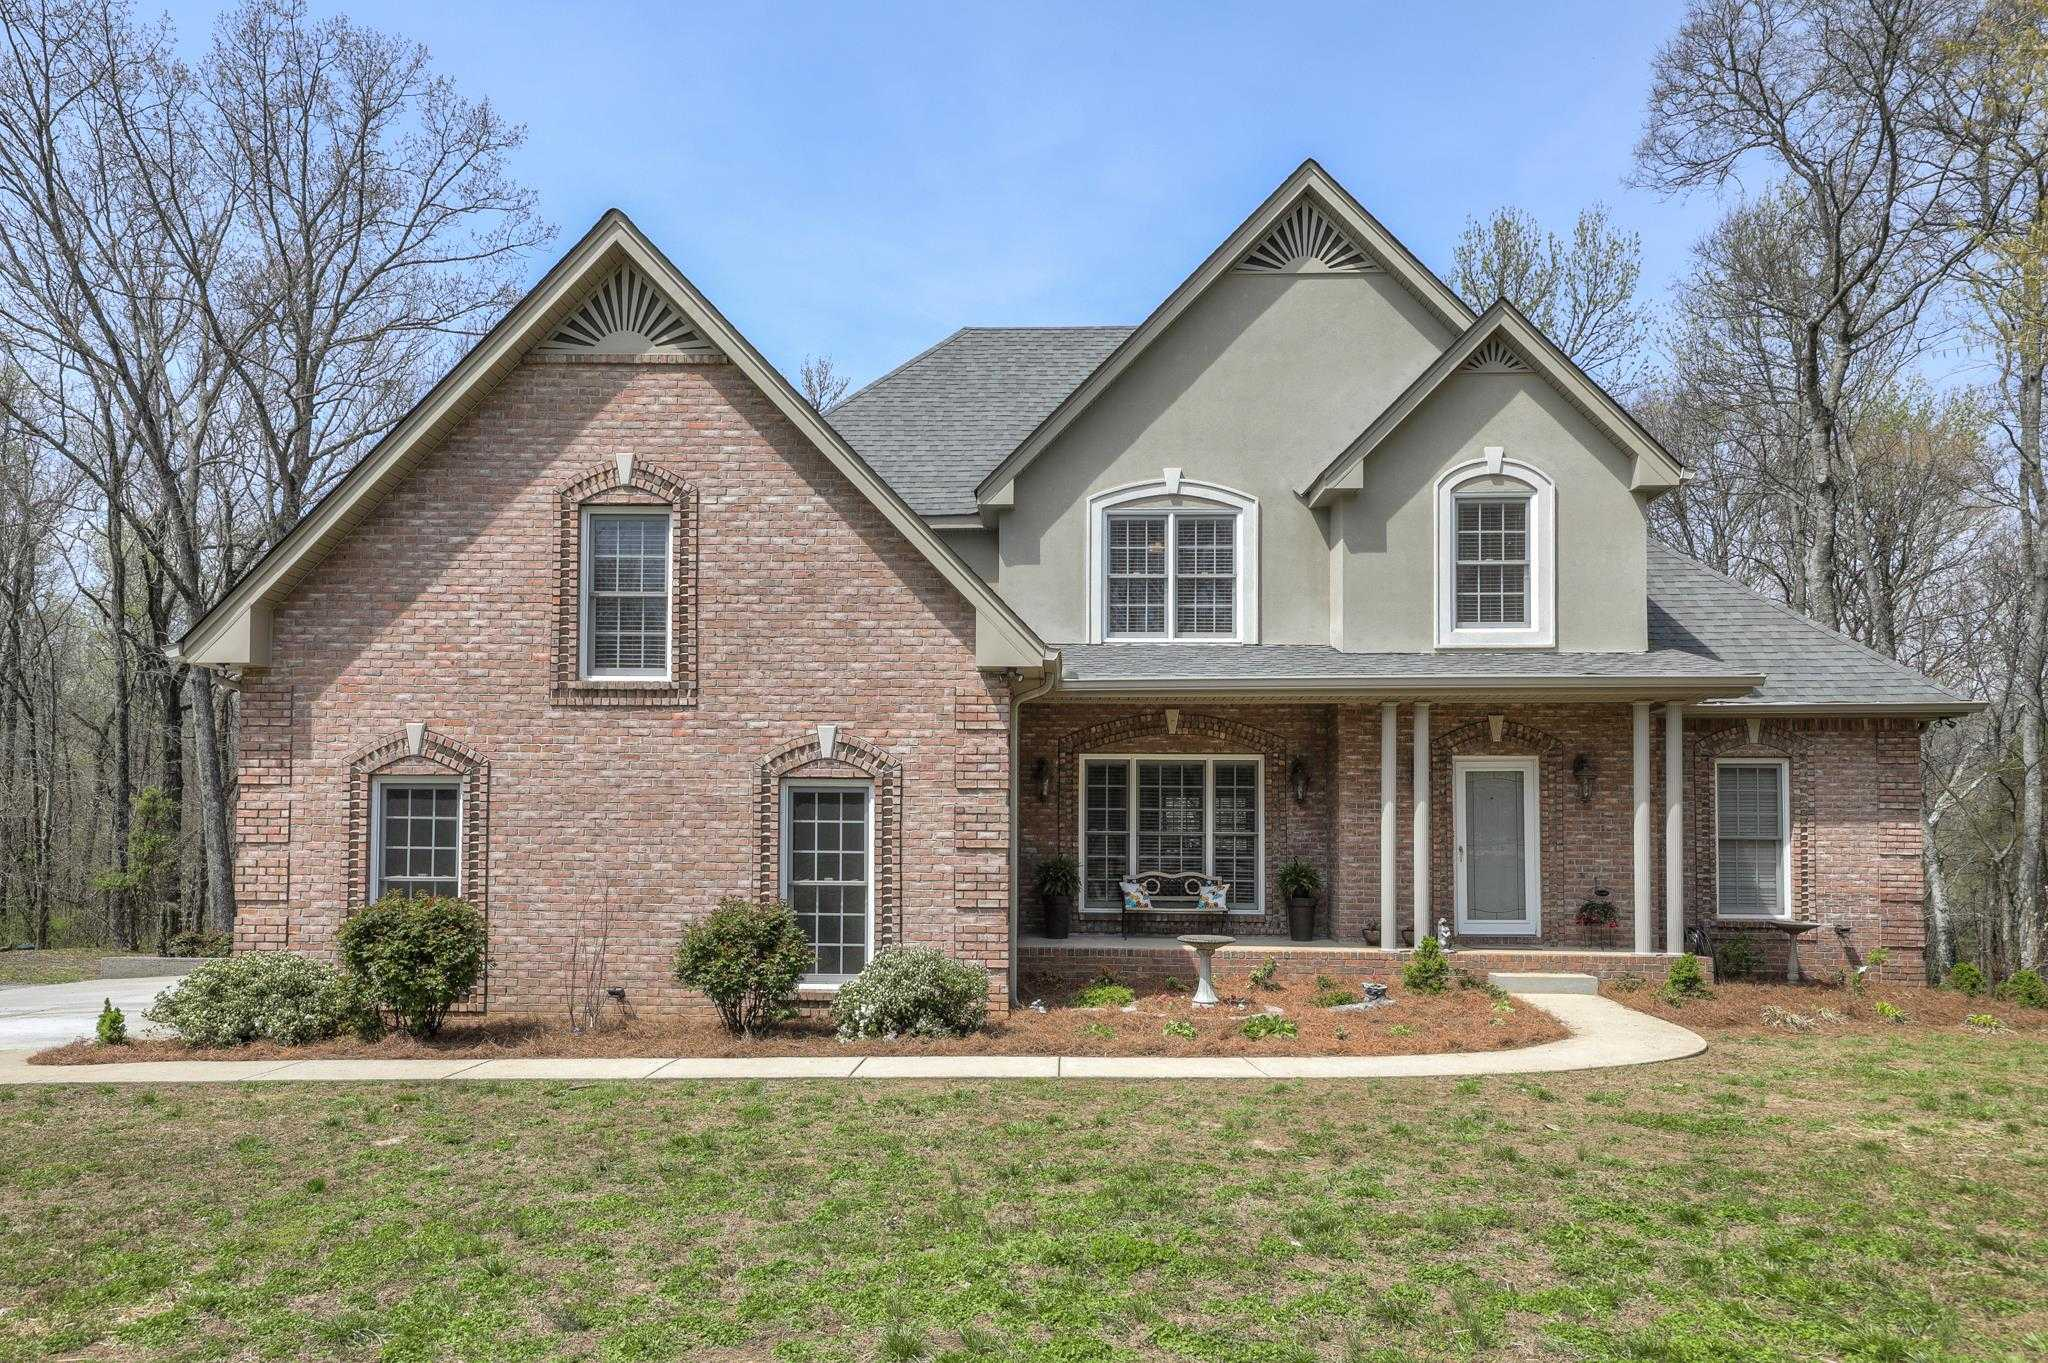 $750,000 - 4Br/6Ba -  for Sale in O C Bass Prop, Mount Juliet